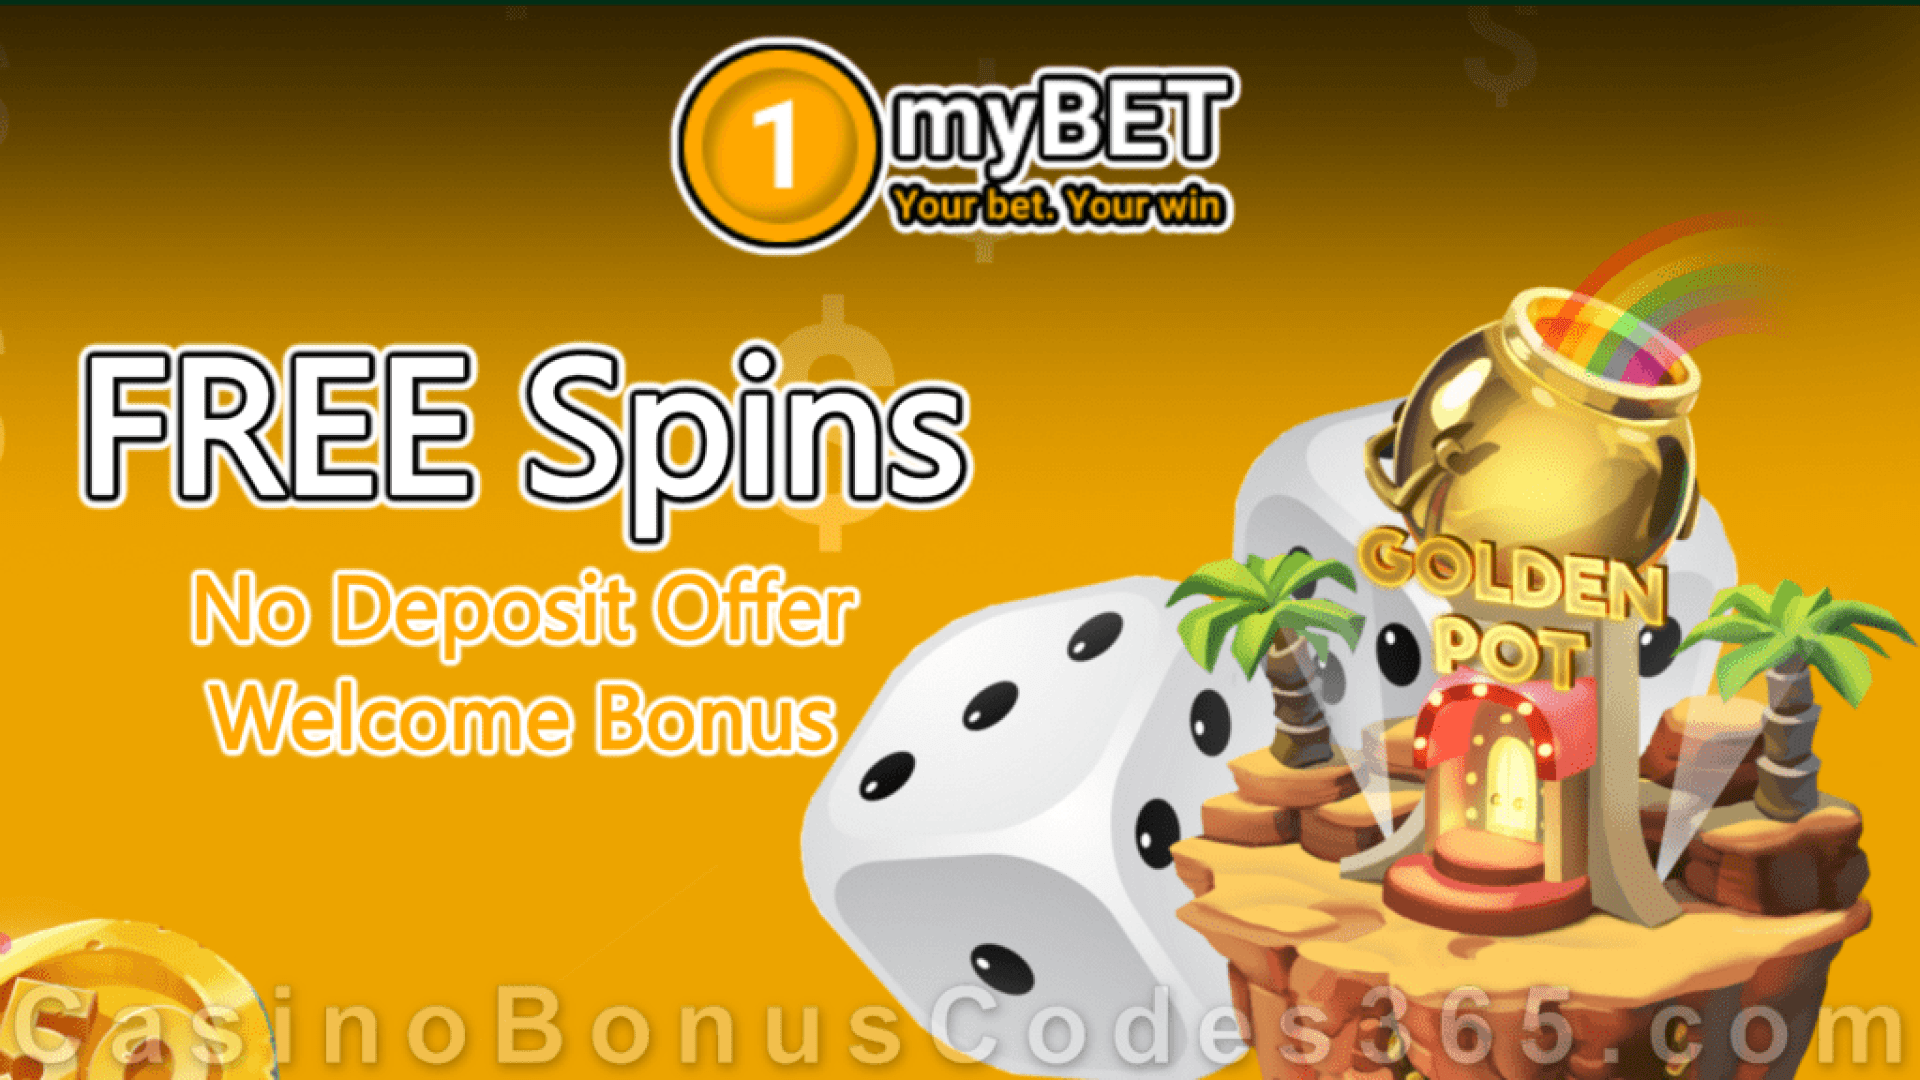 1myBet Monthly No Deposit FREE Spins Welcome Promotion